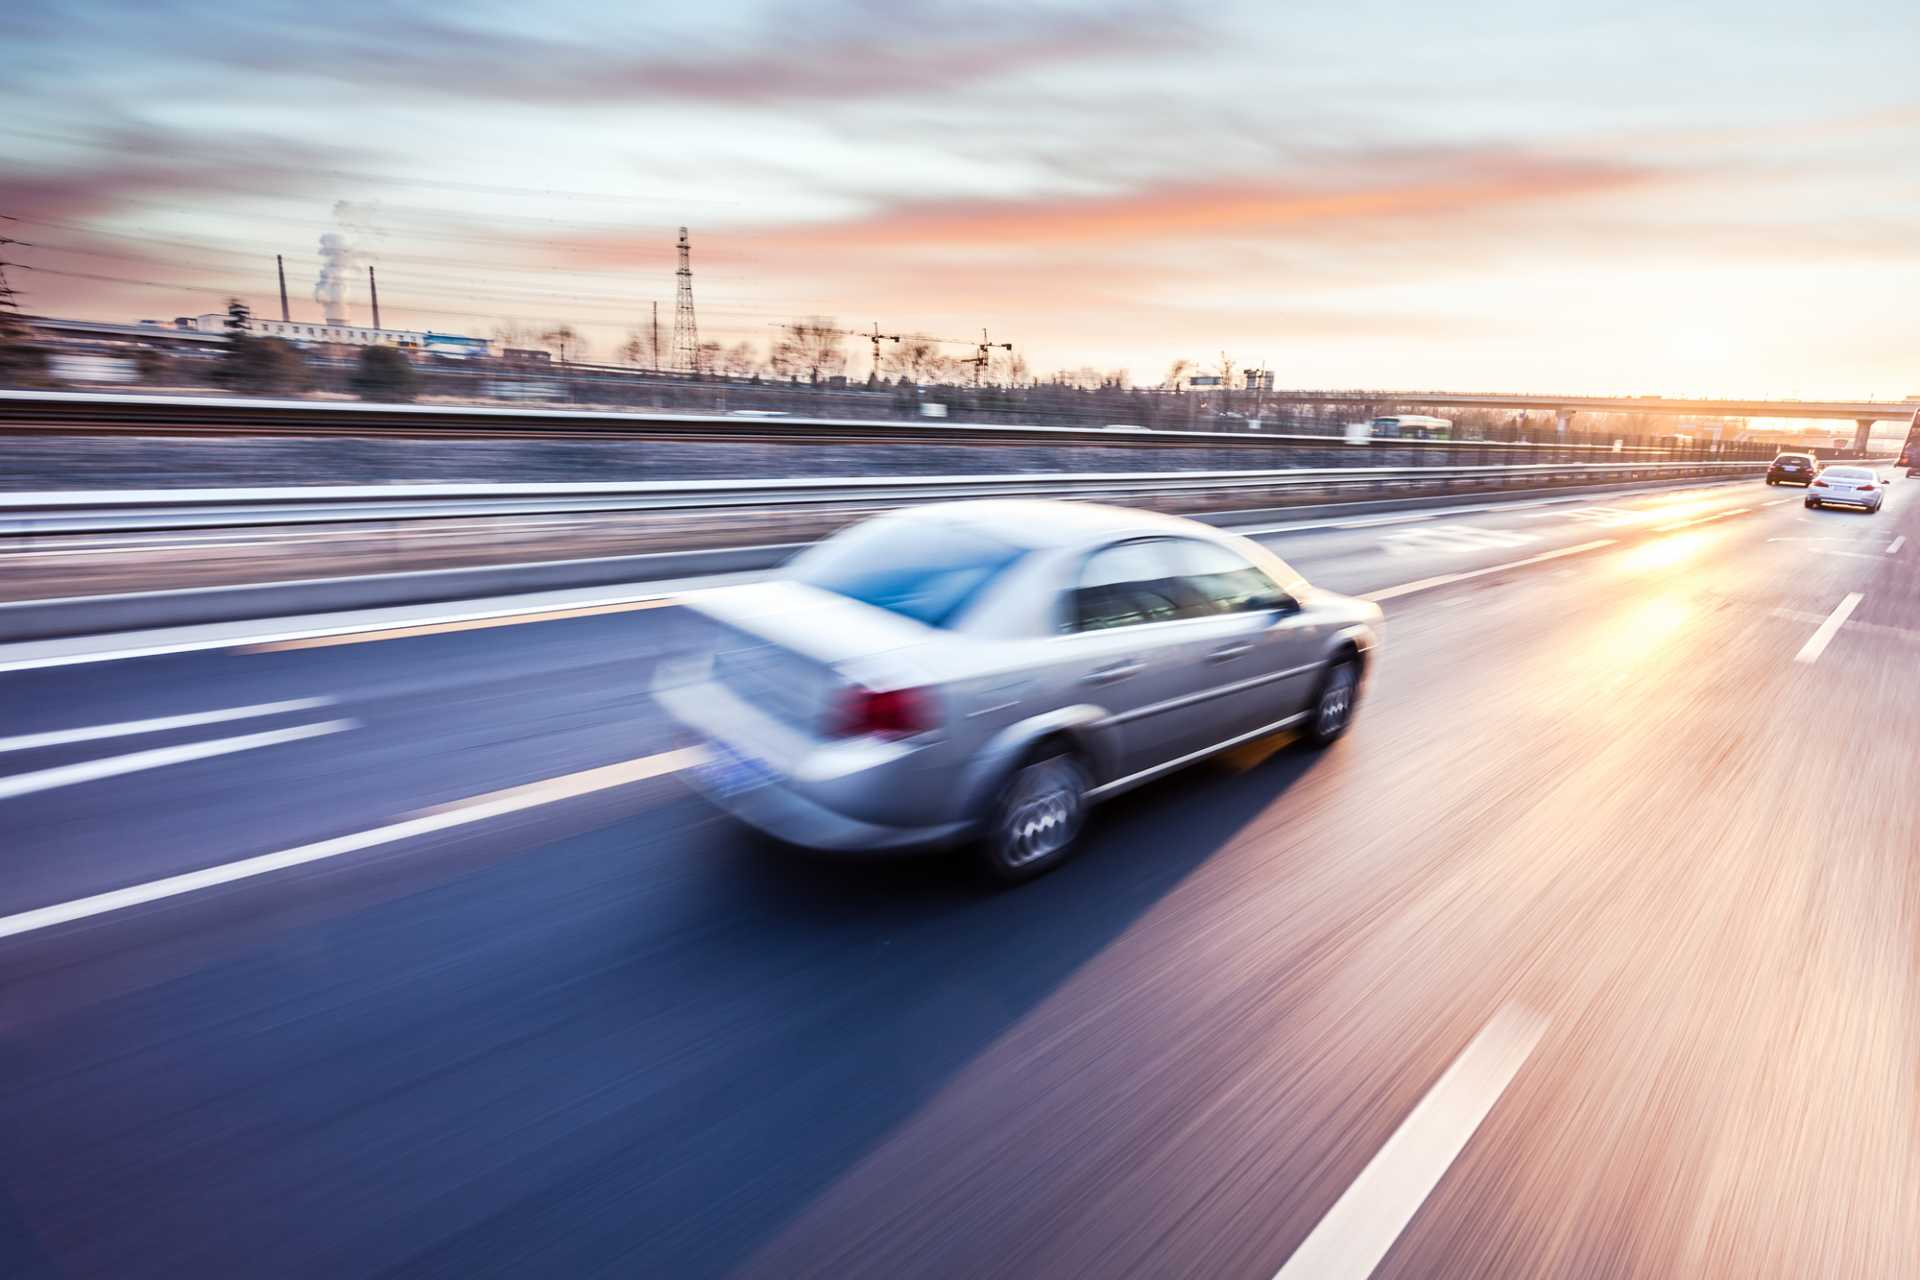 The global connected cars market is expected to grow 270% by 2022 - image courtesy of Depositphotos.